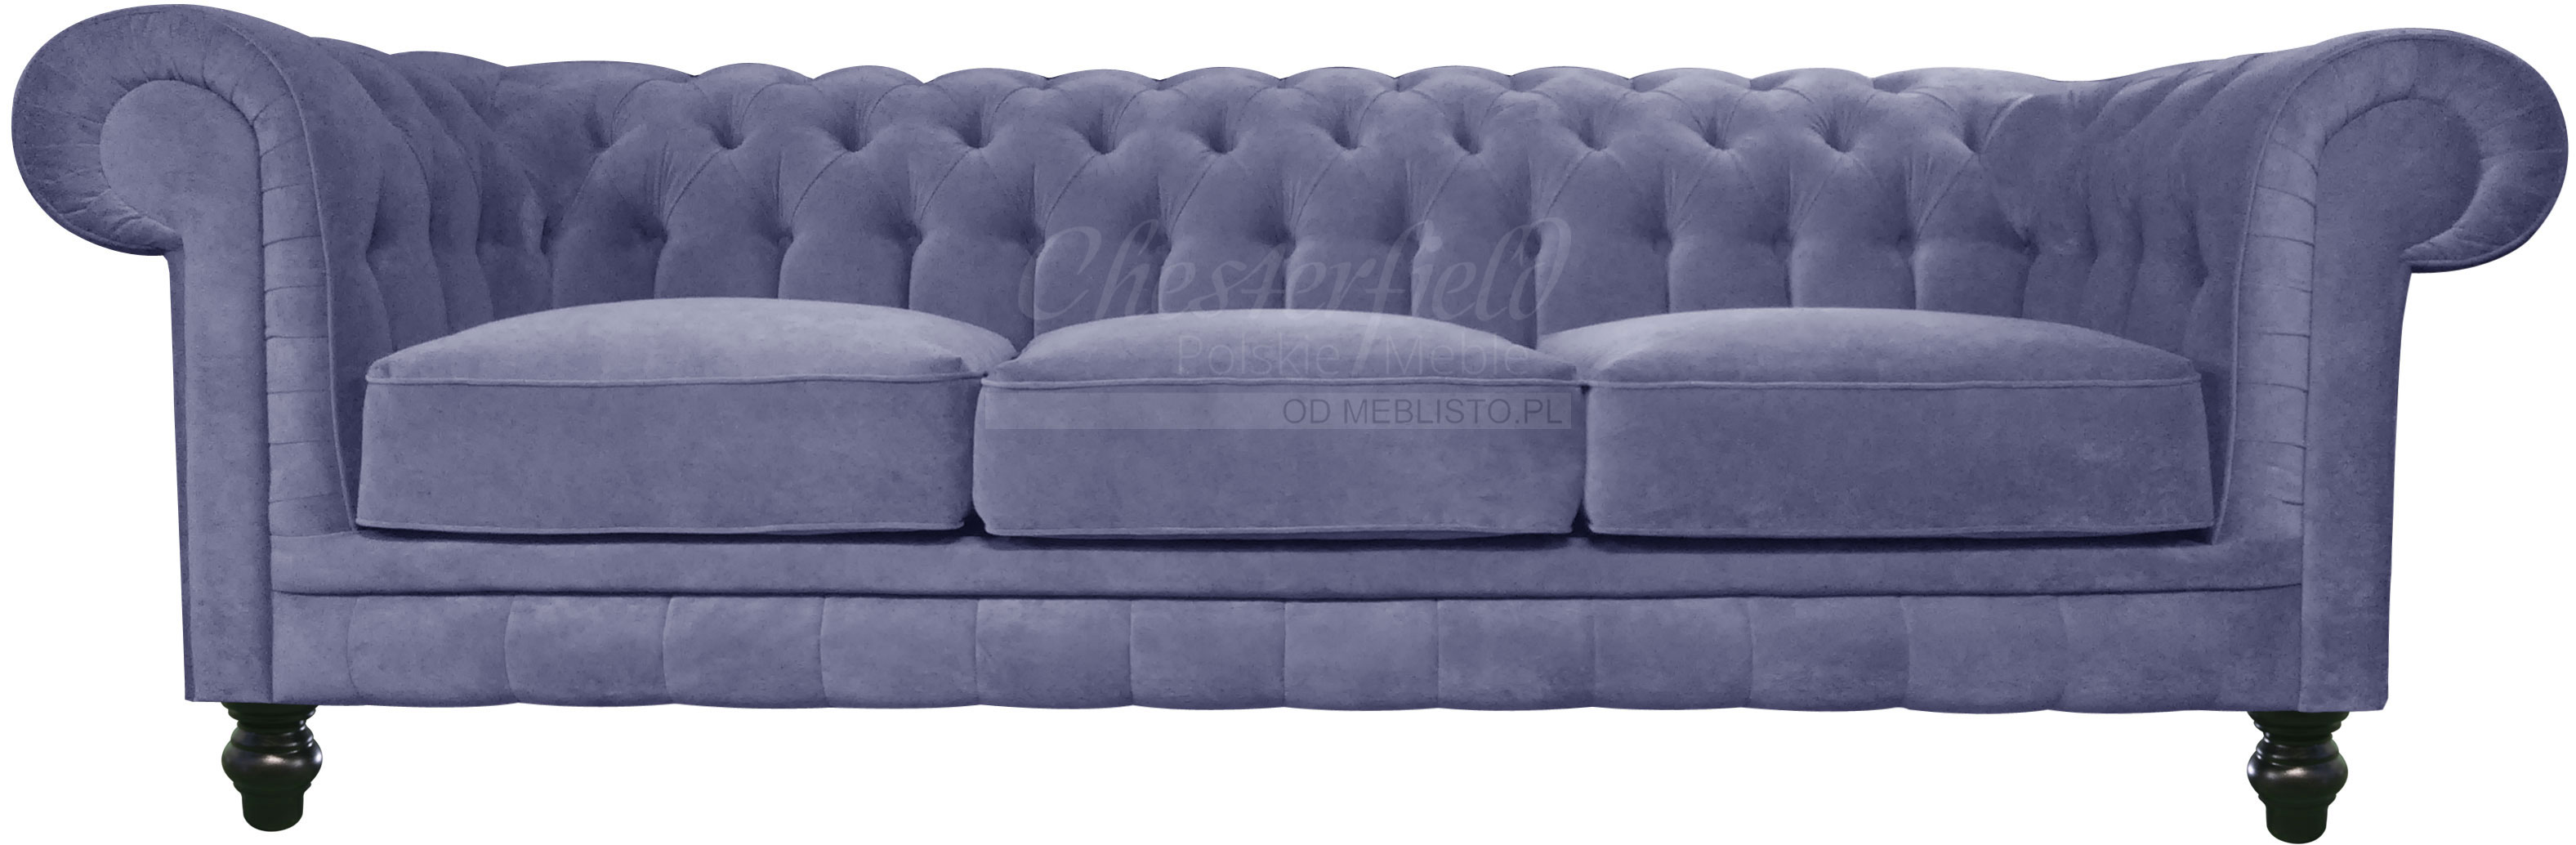 Sofa Chesterfield Rozkładana Inovationi